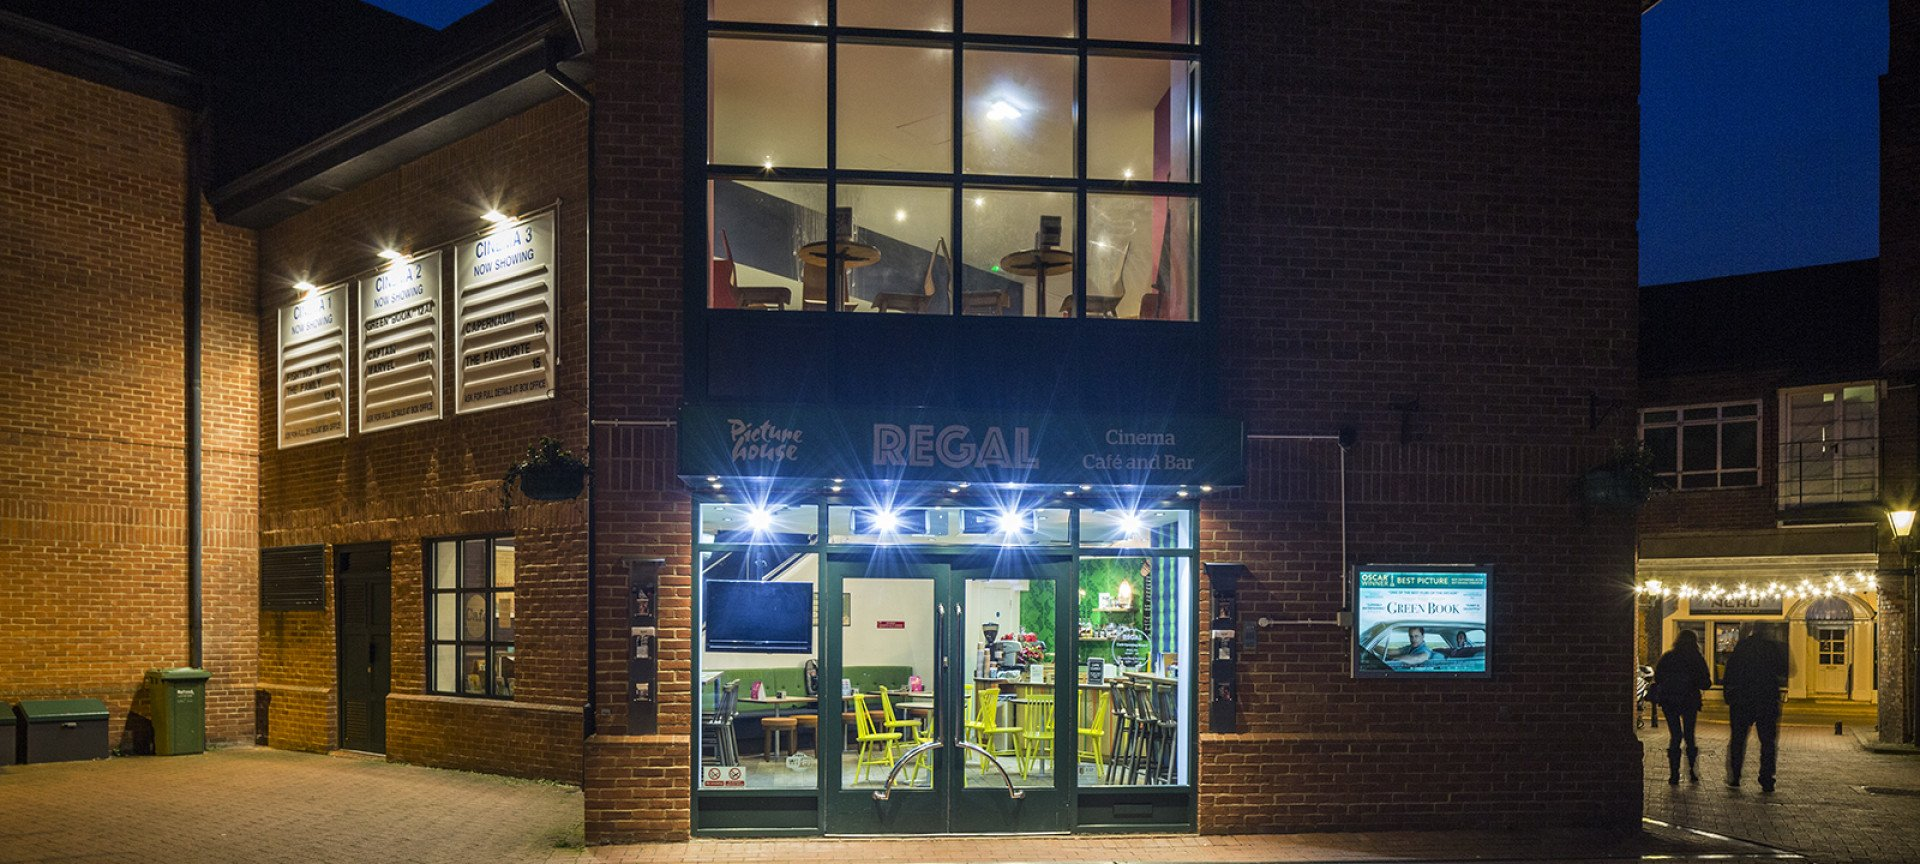 Regal Picturehouse, Henley-On-Thames | Picturehouse Cinemas